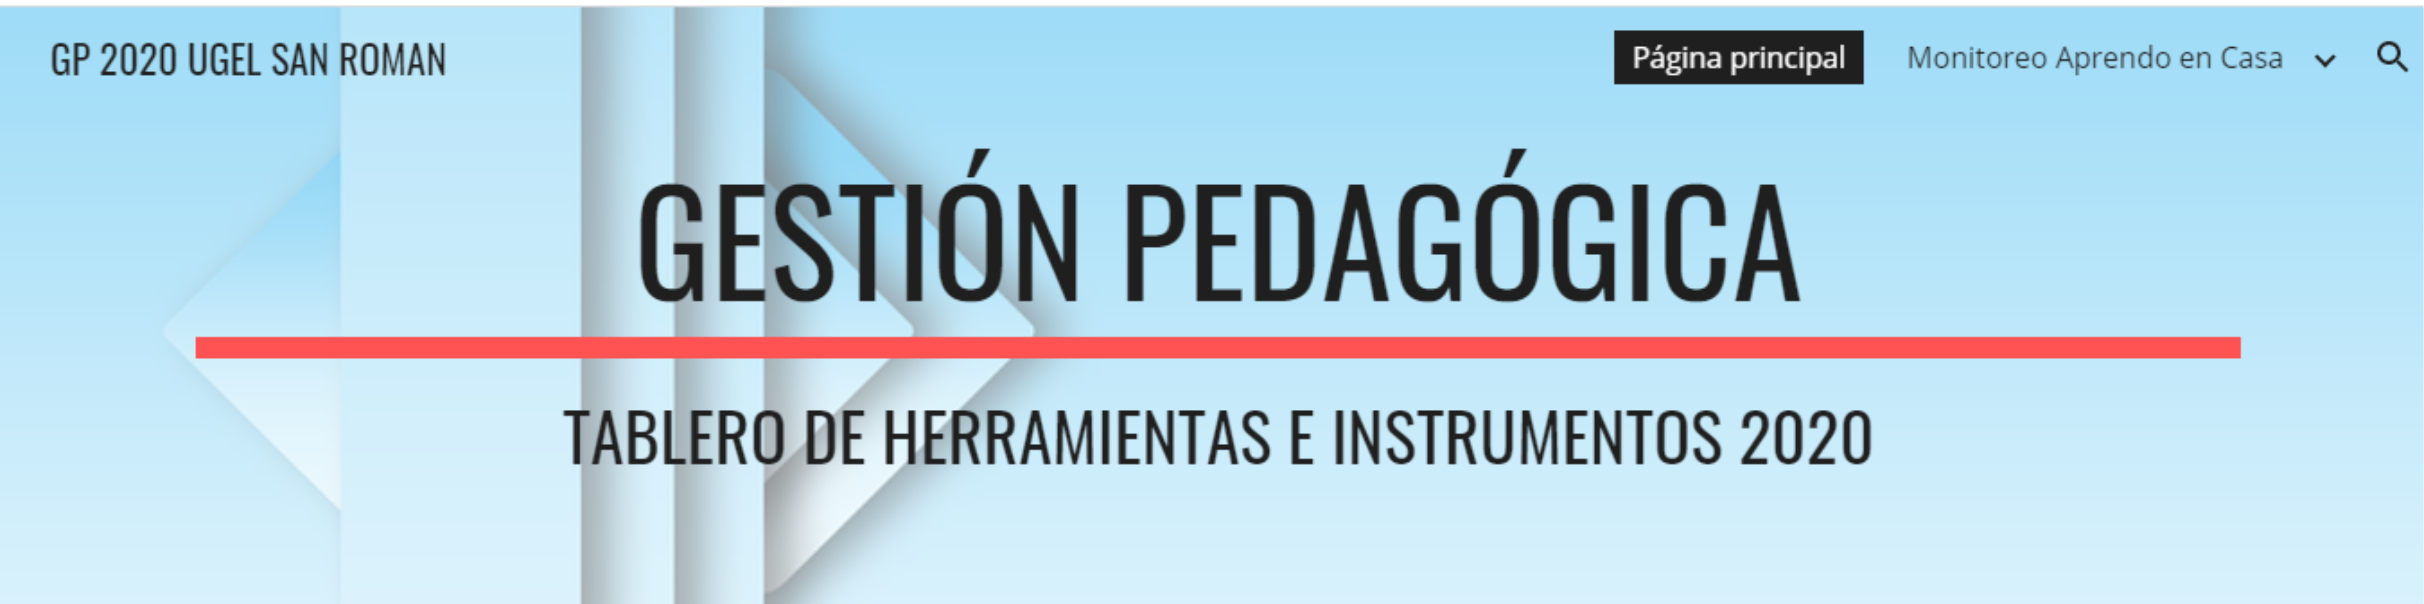 https://sites.google.com/ugelsanroman.edu.pe/gp2020ugelsanroman/p%C3%A1gina-principal